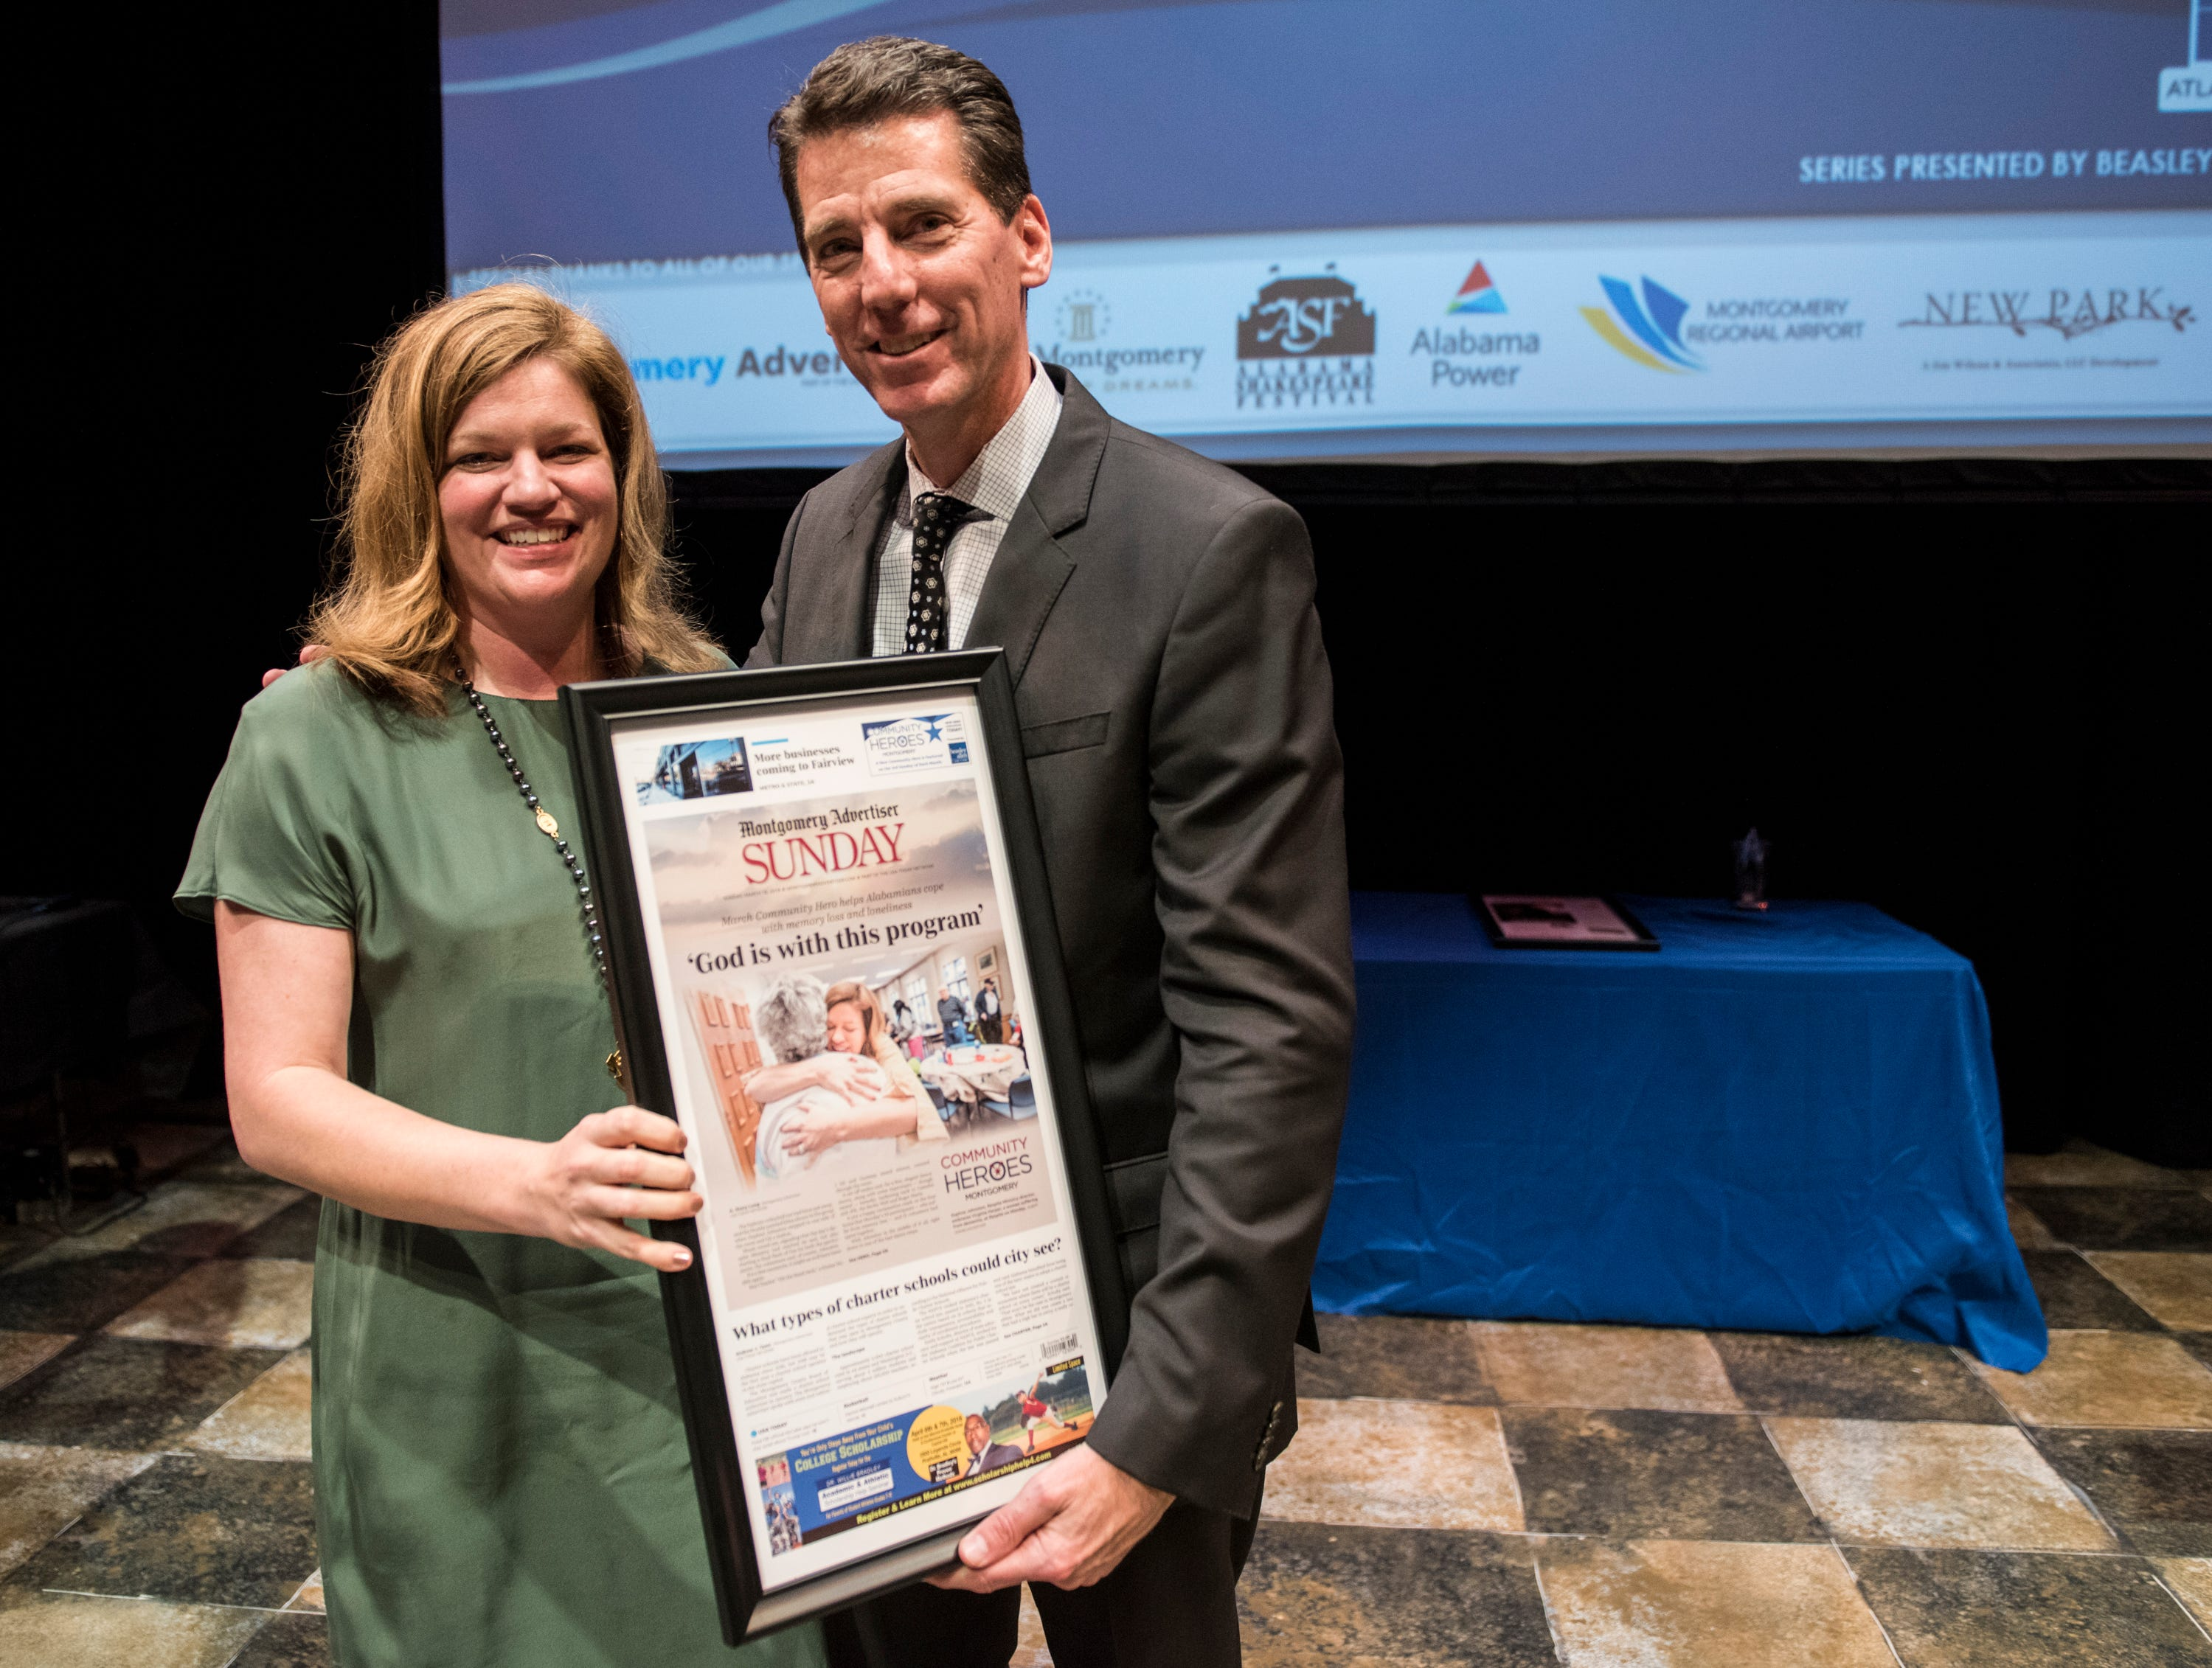 Community Hero Daphne Johnston and Montgomery Advertiser publisher Michael Galvin pose for a picture during the Community Heroes awards ceremony at Alabama Shakespeare Festival in Montgomery, Ala., on Tuesday, Jan. 8, 2019.